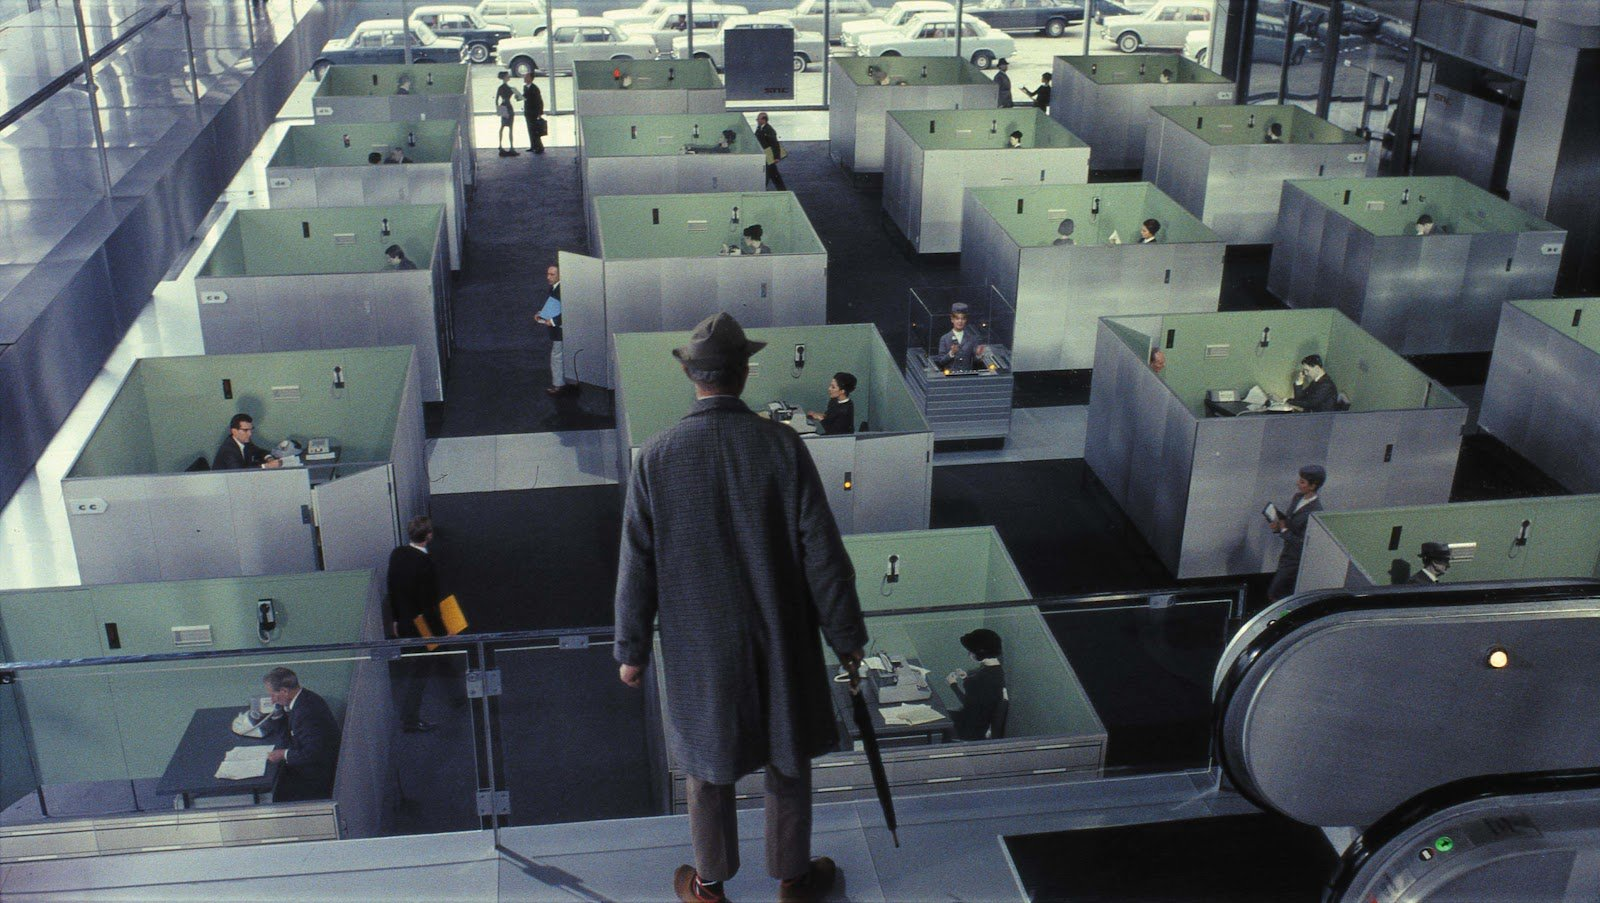 2001 A Space Odyssey Porn Video production design porn: from playtime to the conformist to